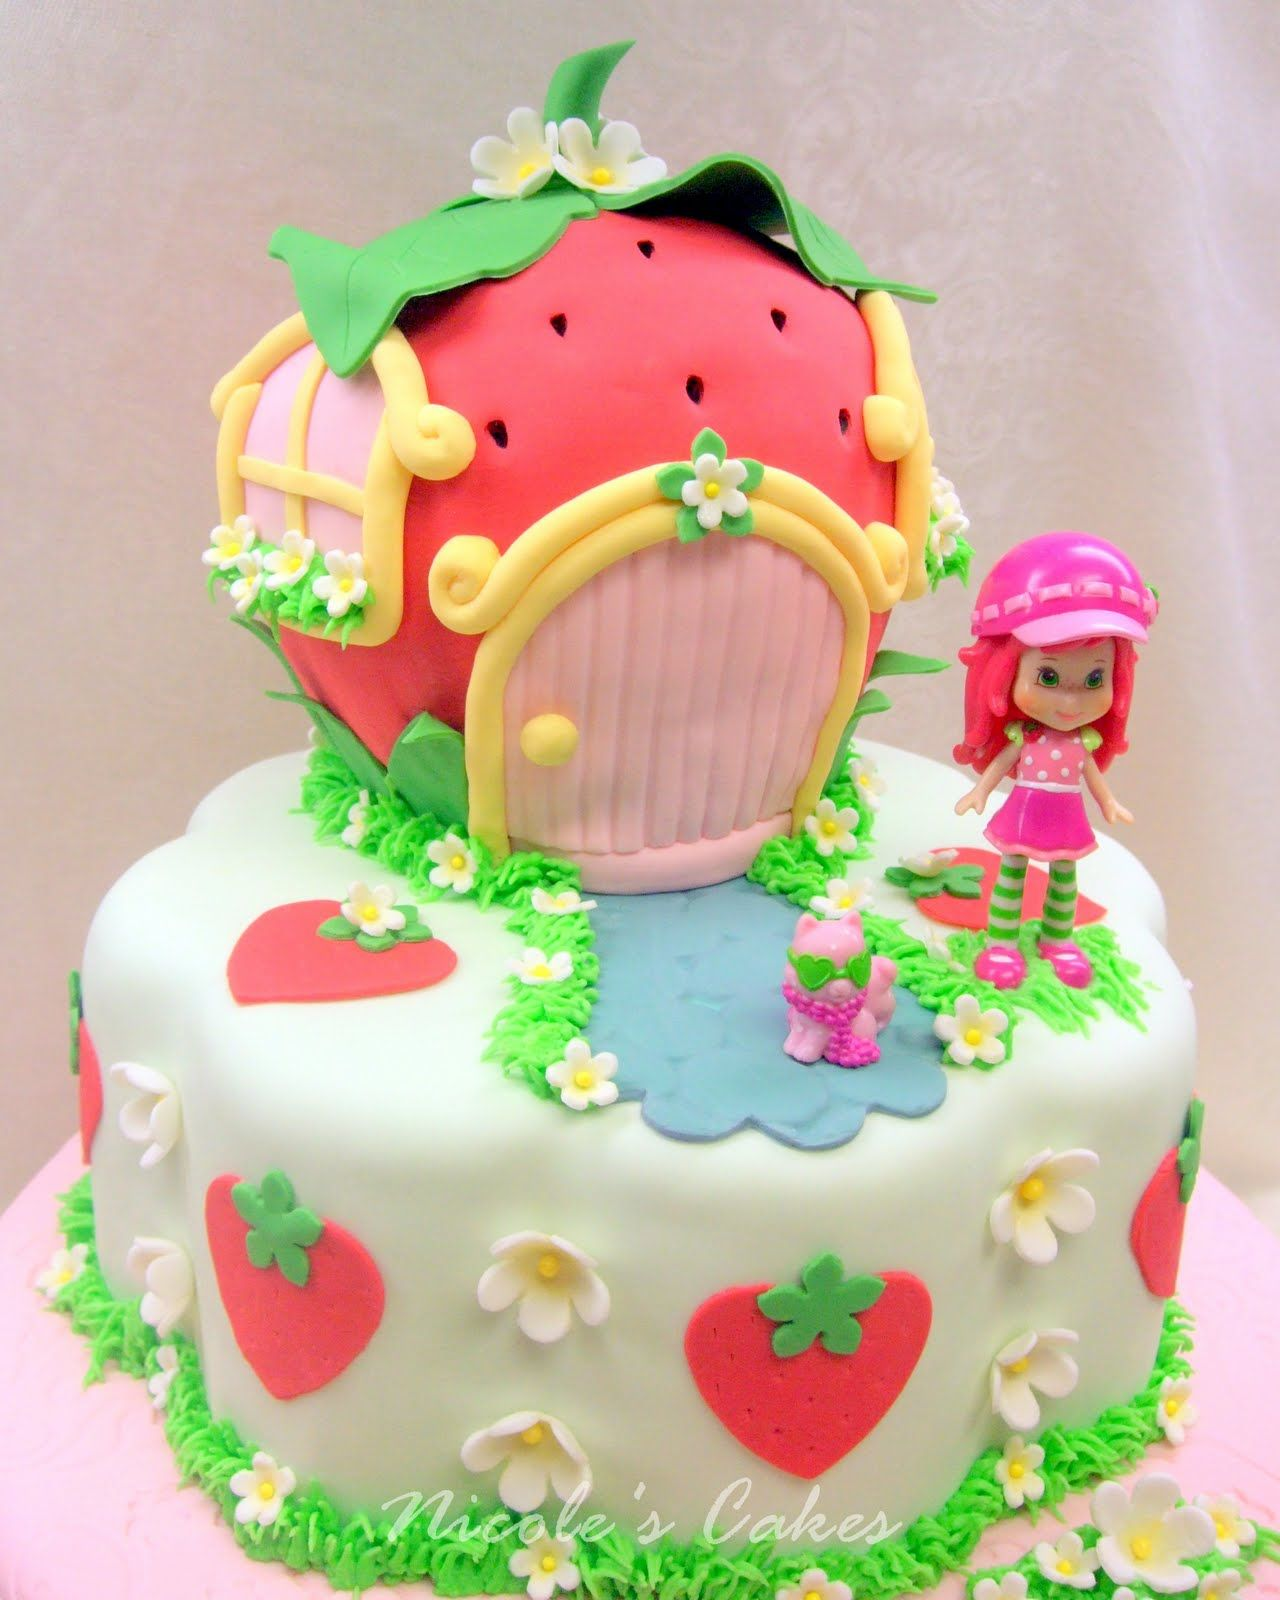 Beautiful Strawberry Cake Images : Confections, Cakes & Creations!: A Berry Beautiful ...